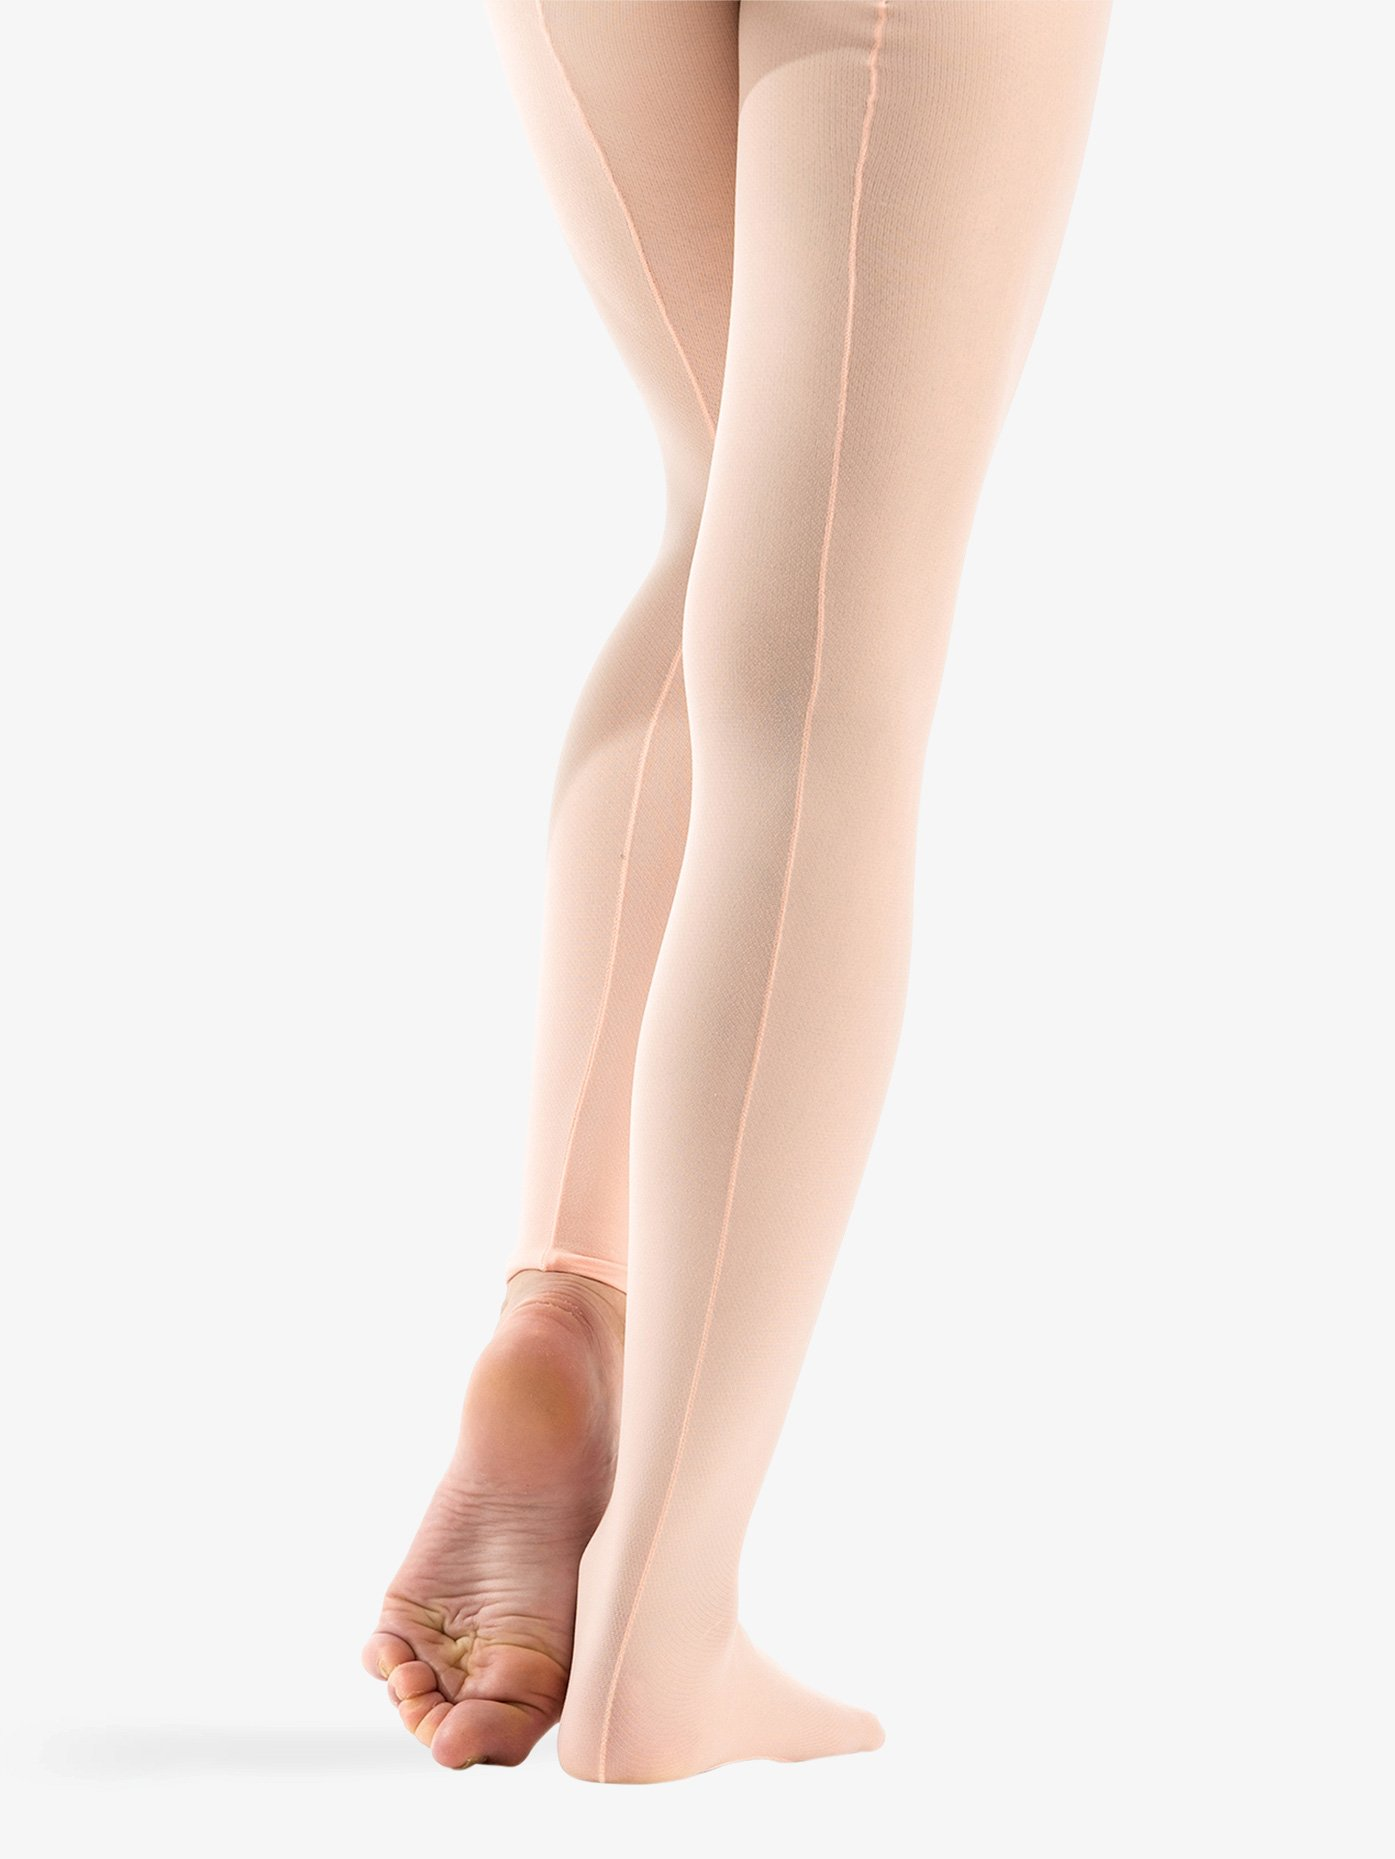 American Movement Adult Professional Seamed Mesh Convertible Tights AM1012